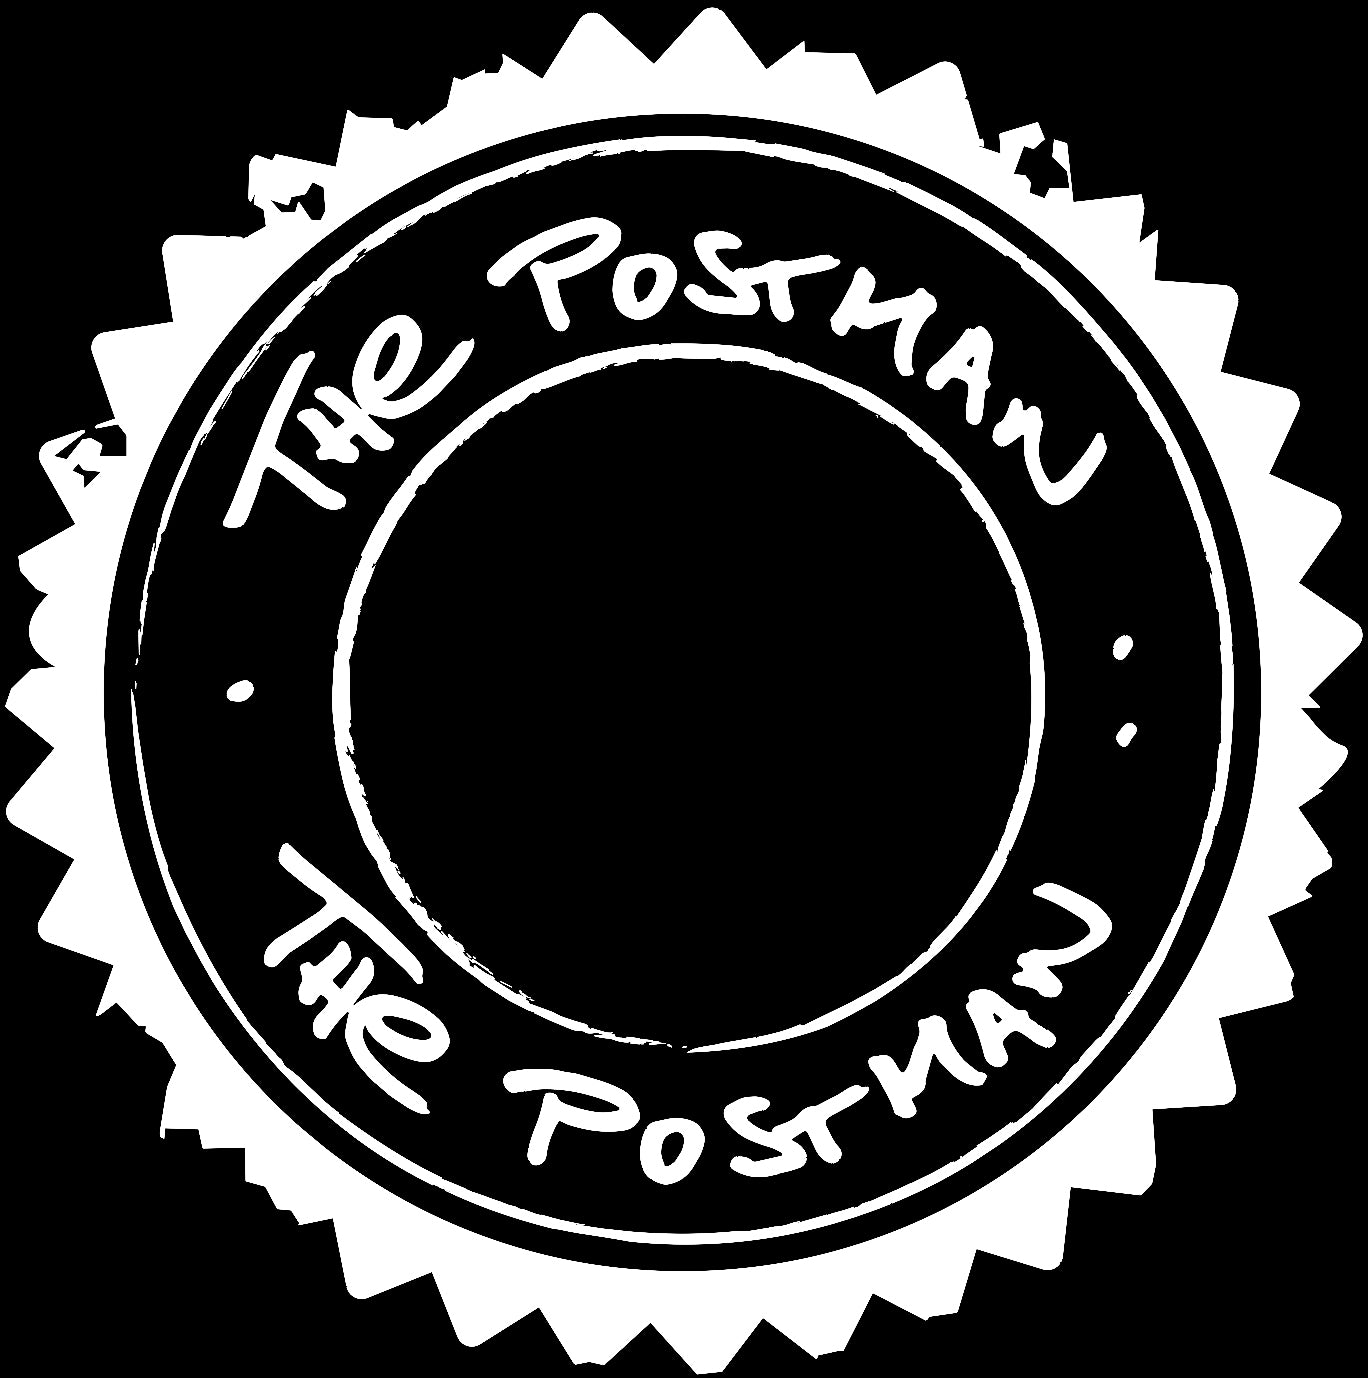 THE POSTMAN ART LOGO